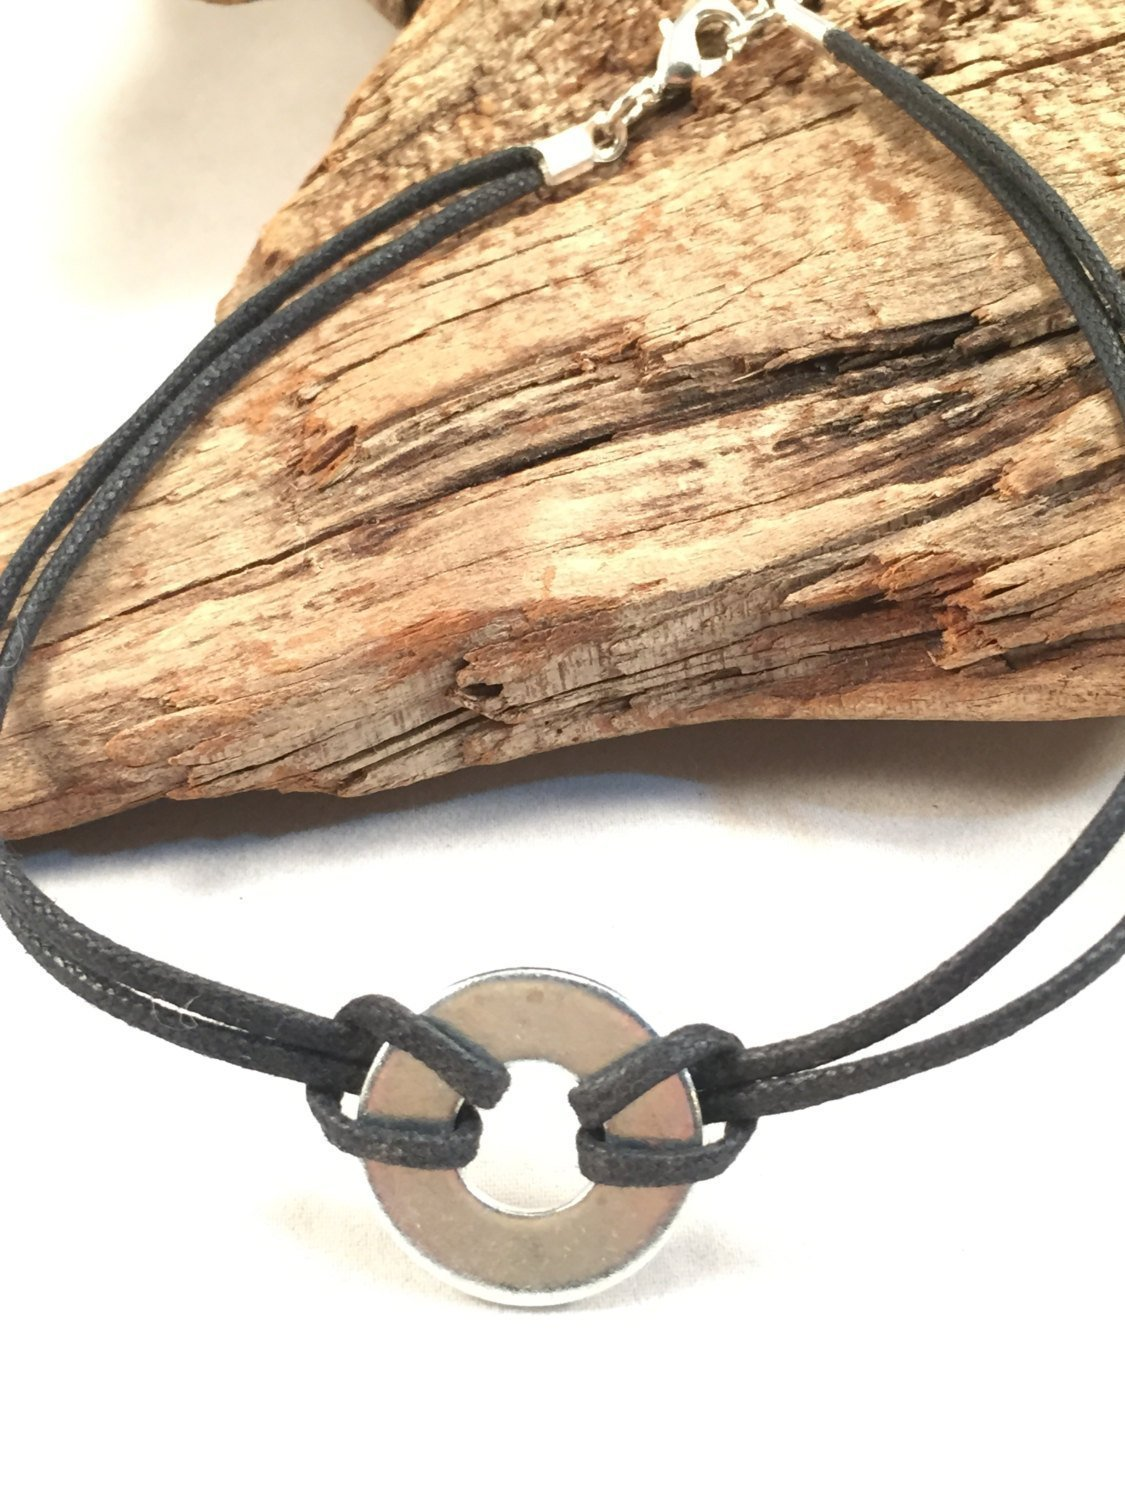 Boho Black and Silver Tone Washer Choker Necklace Cotton or Leather Cord